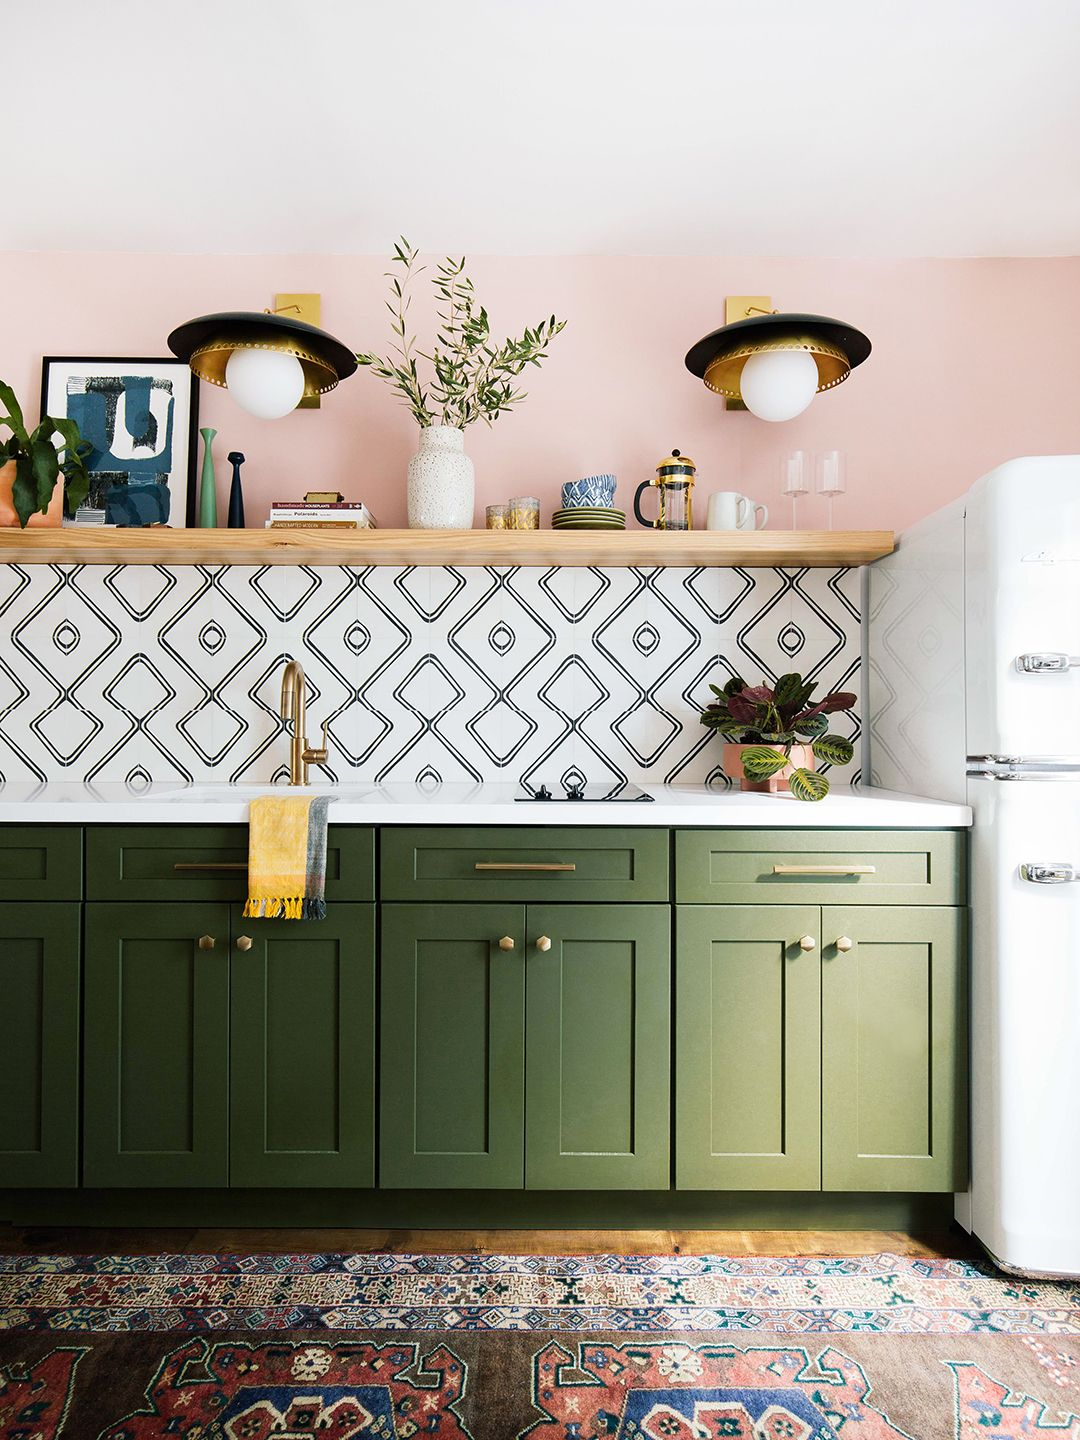 8 Kitchen Trends That Will Be Huge in 2019